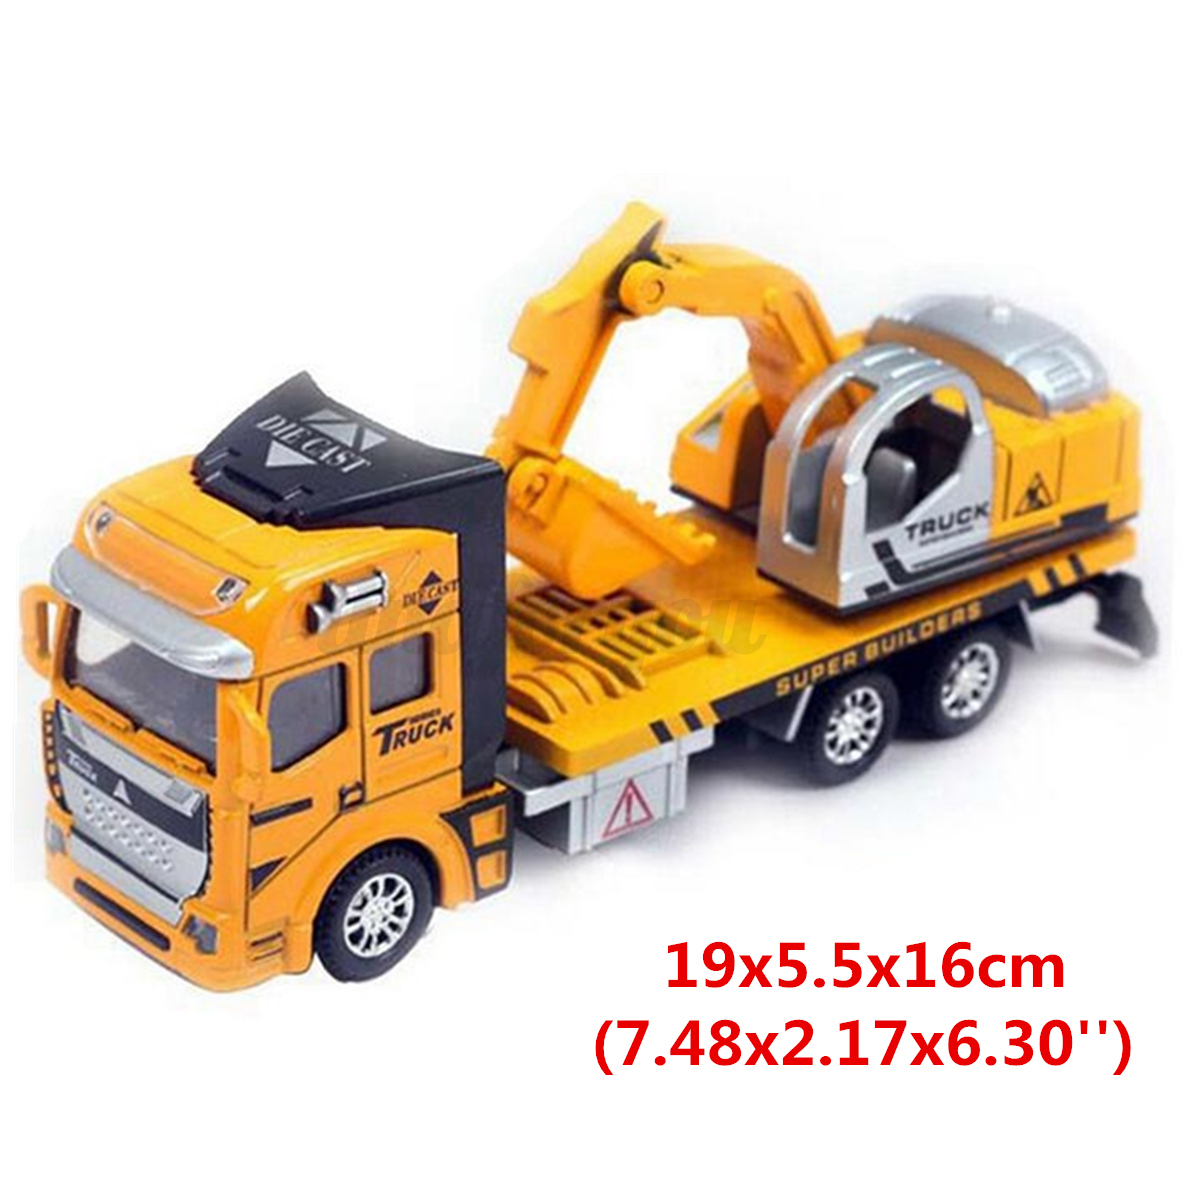 New 1 48 Excavator Vehicles Diecast Model Pull Back Alloy Car Toy  # Modele Banc En Bois